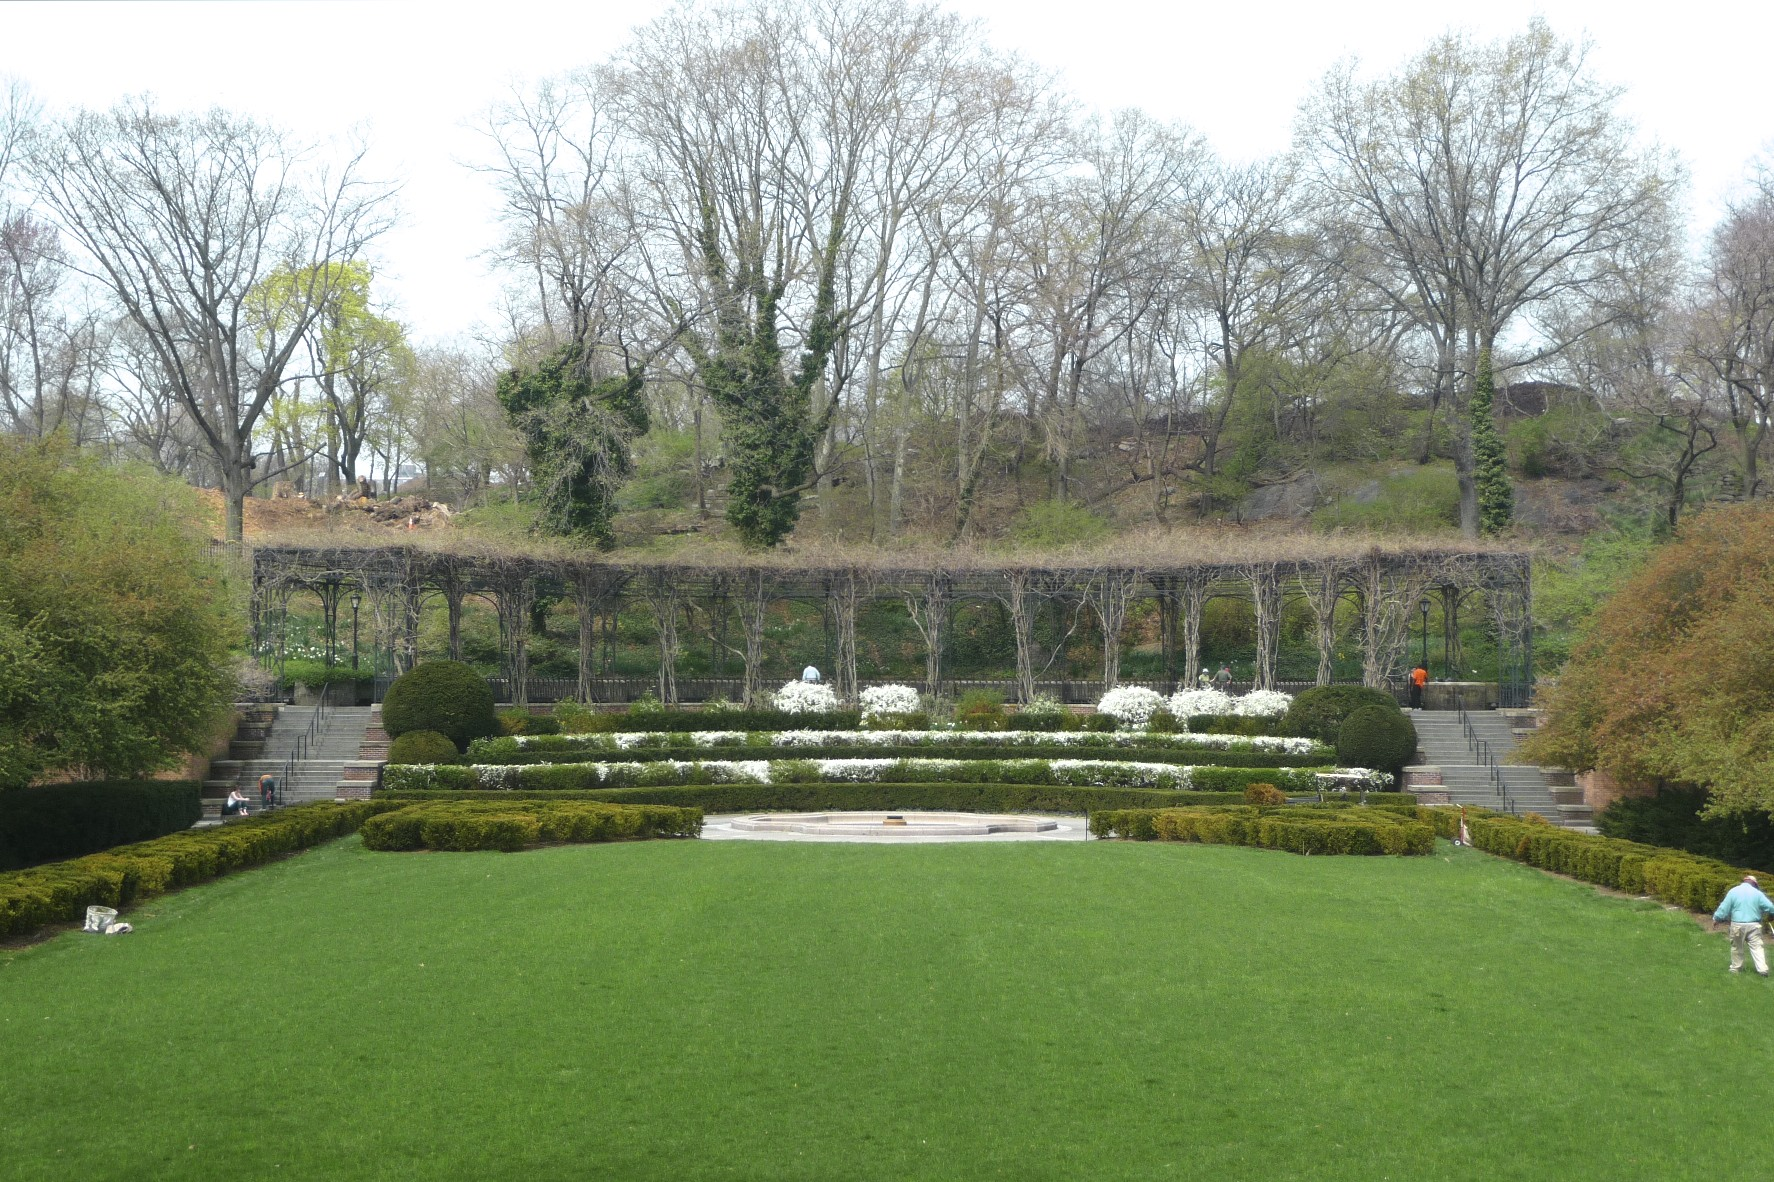 The Conservatory Garden In Central Park Tom 39 S Eye View Blog